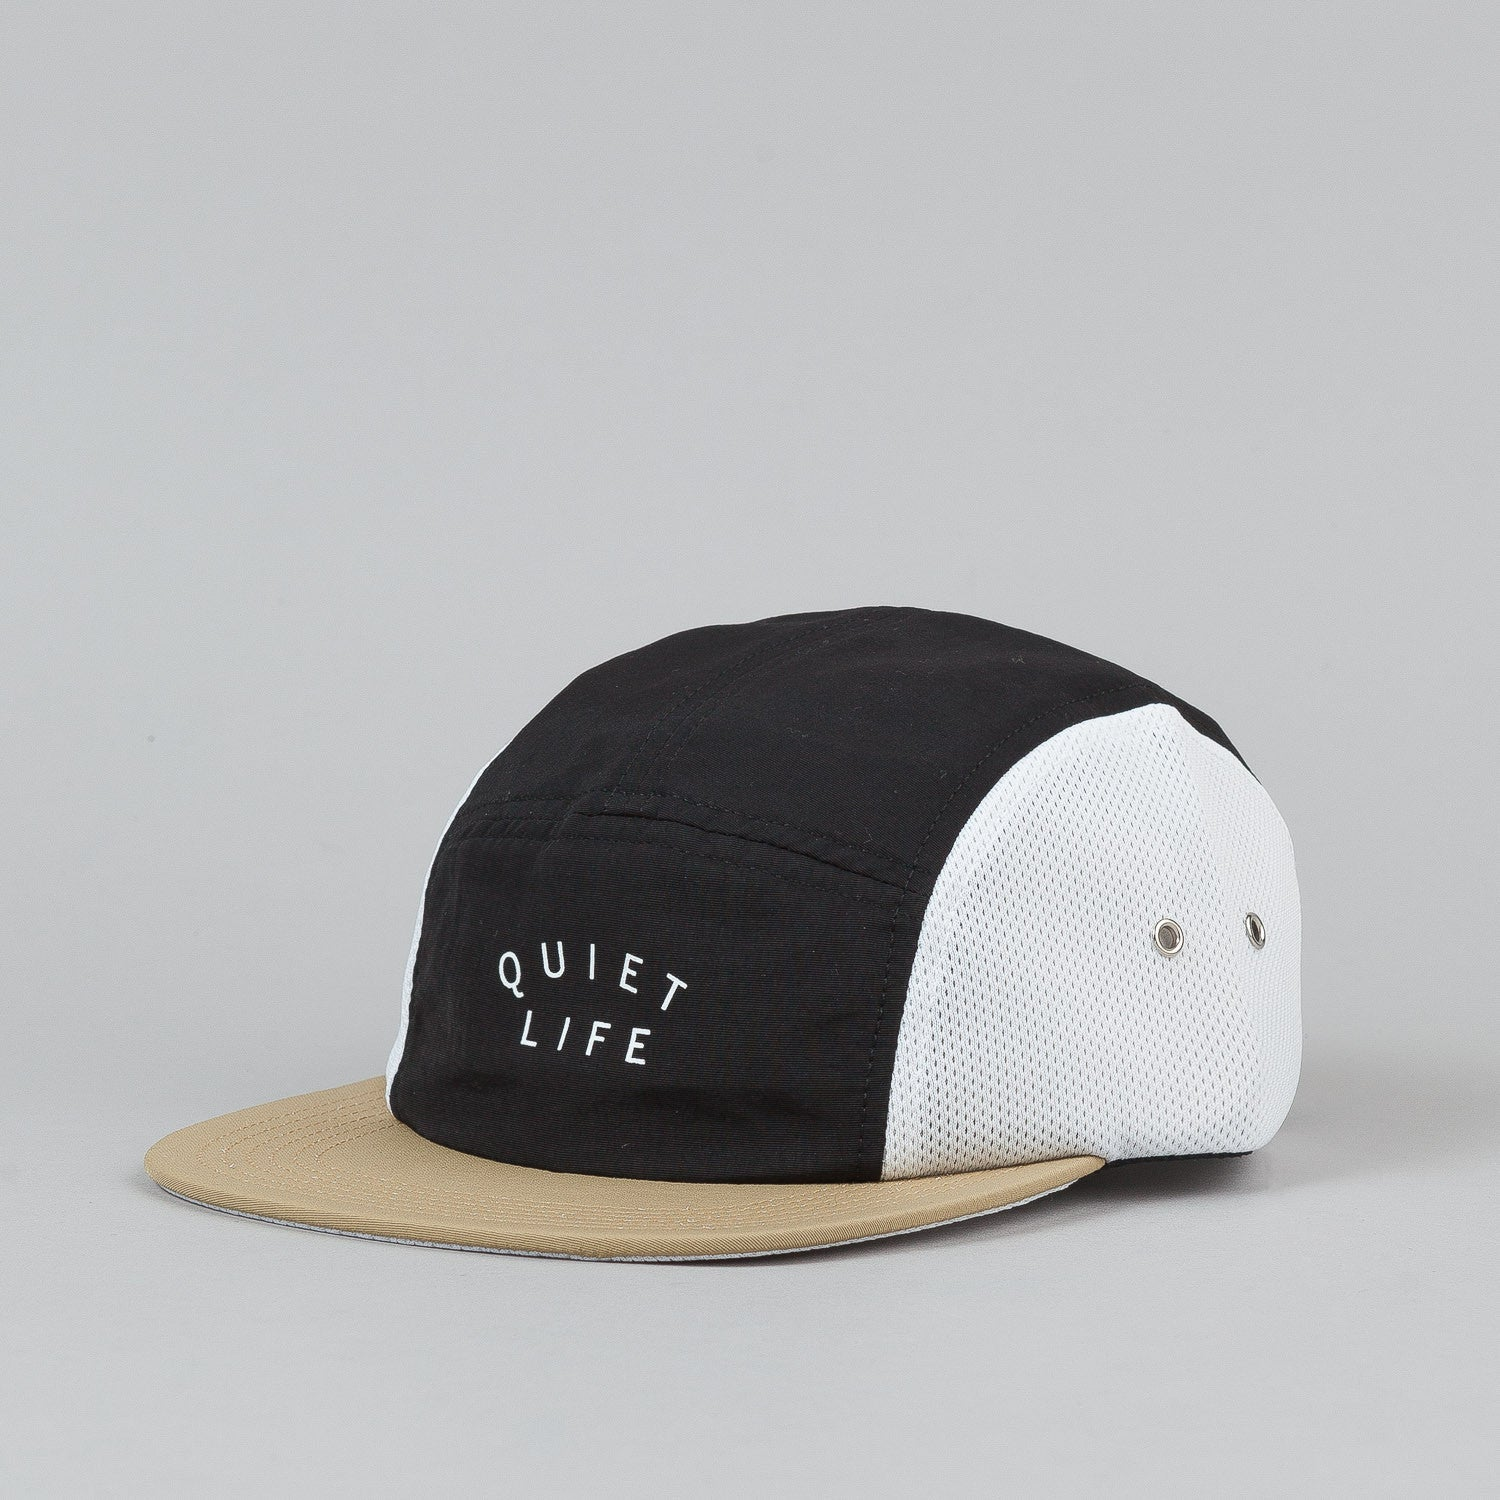 The Quiet Life Runner 5 Panel Cap